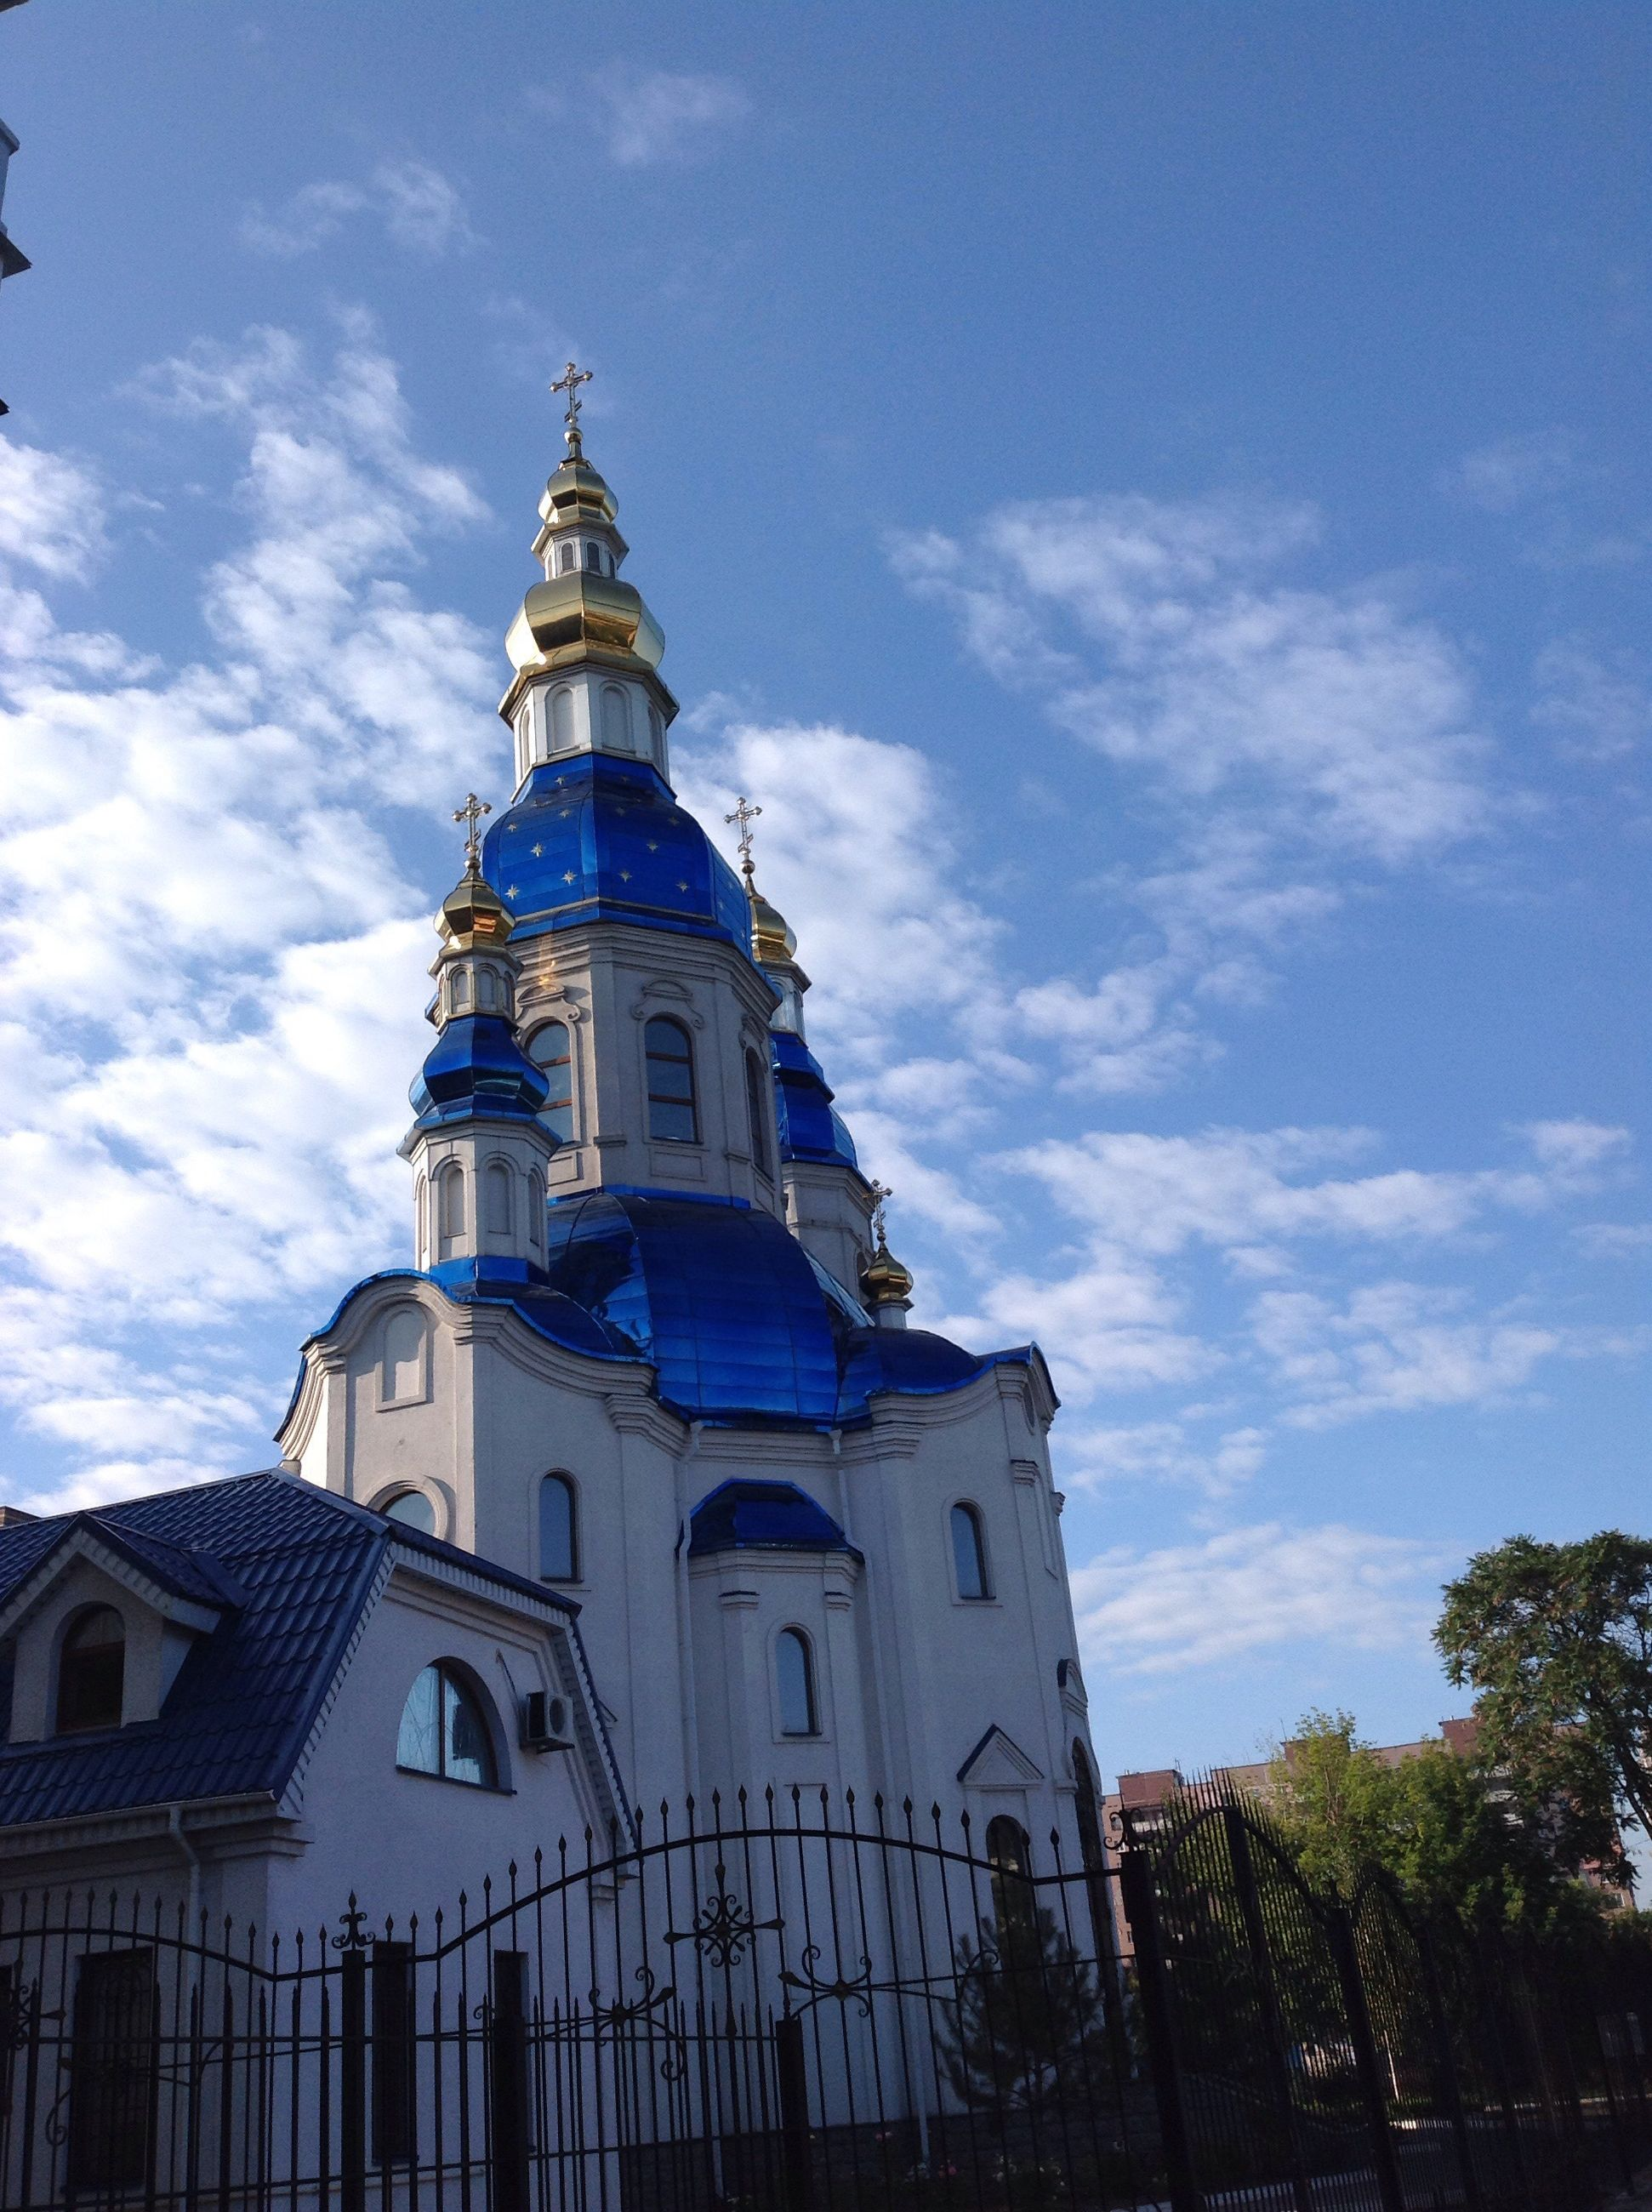 architecture, built structure, building exterior, place of worship, religion, spirituality, church, low angle view, sky, dome, blue, cloud - sky, outdoors, history, architectural feature, spire, high section, no people, exterior, green color, tourism